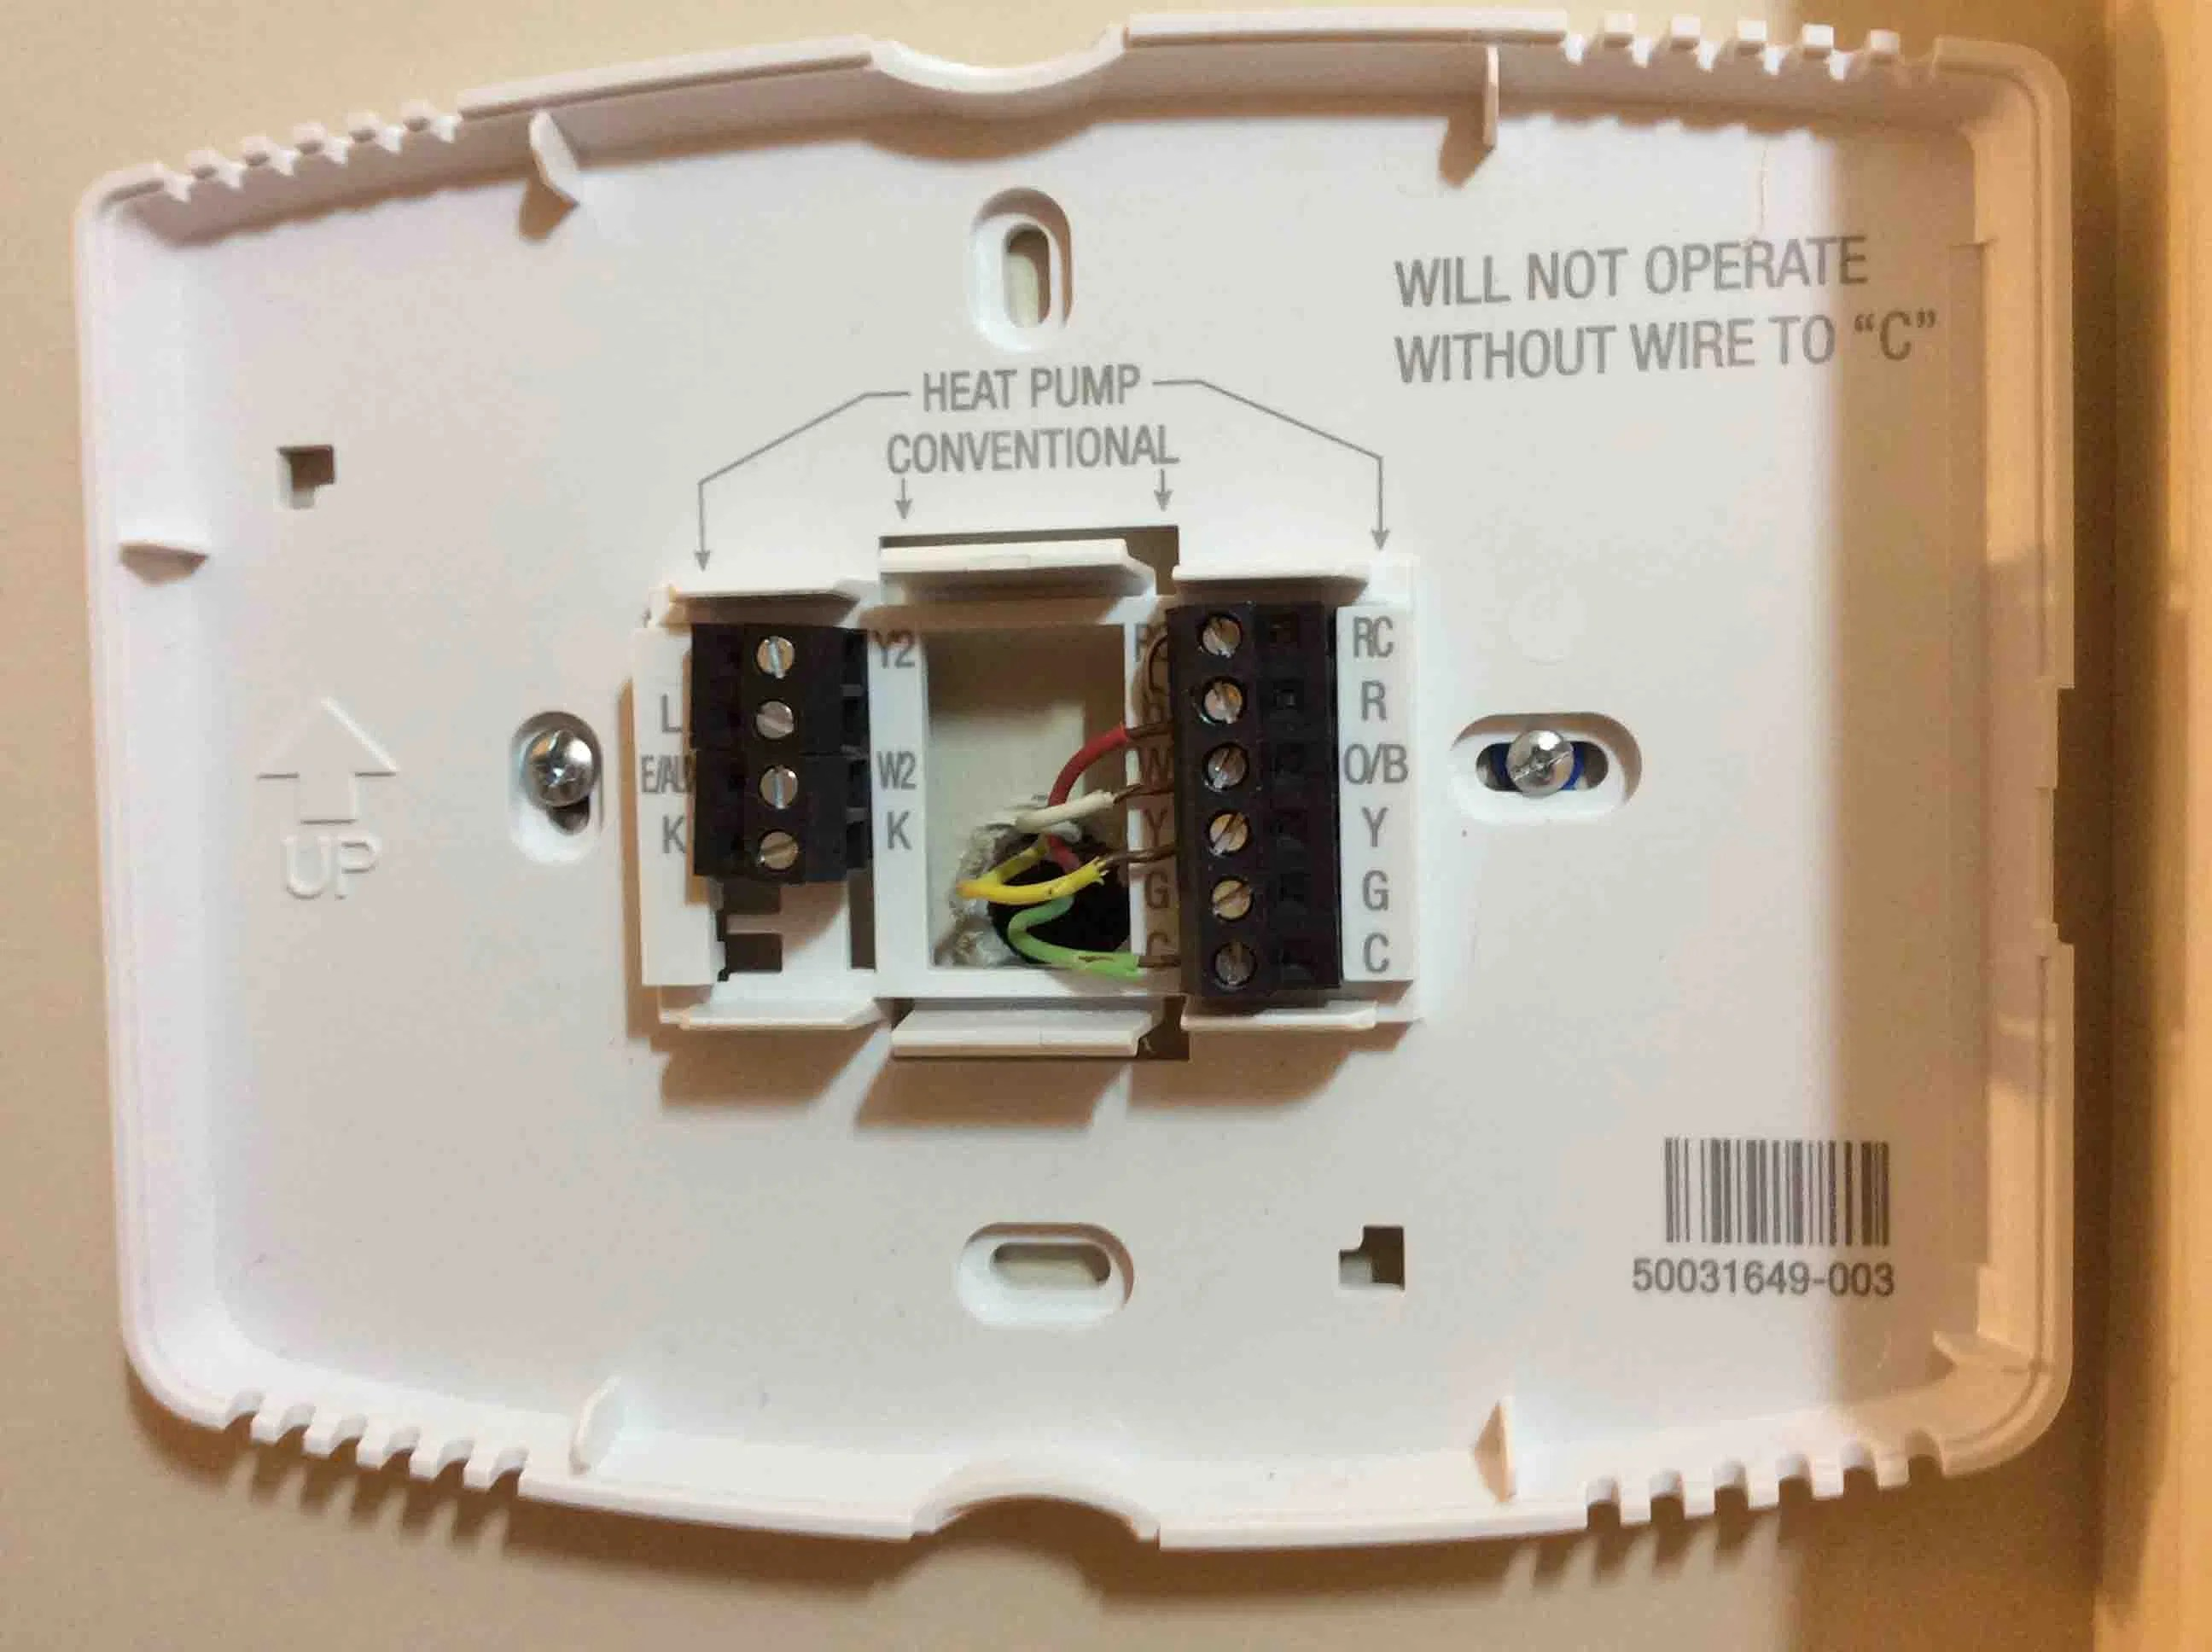 2 wire honeywell thermostat wiring diagram [ 2592 x 1936 Pixel ]